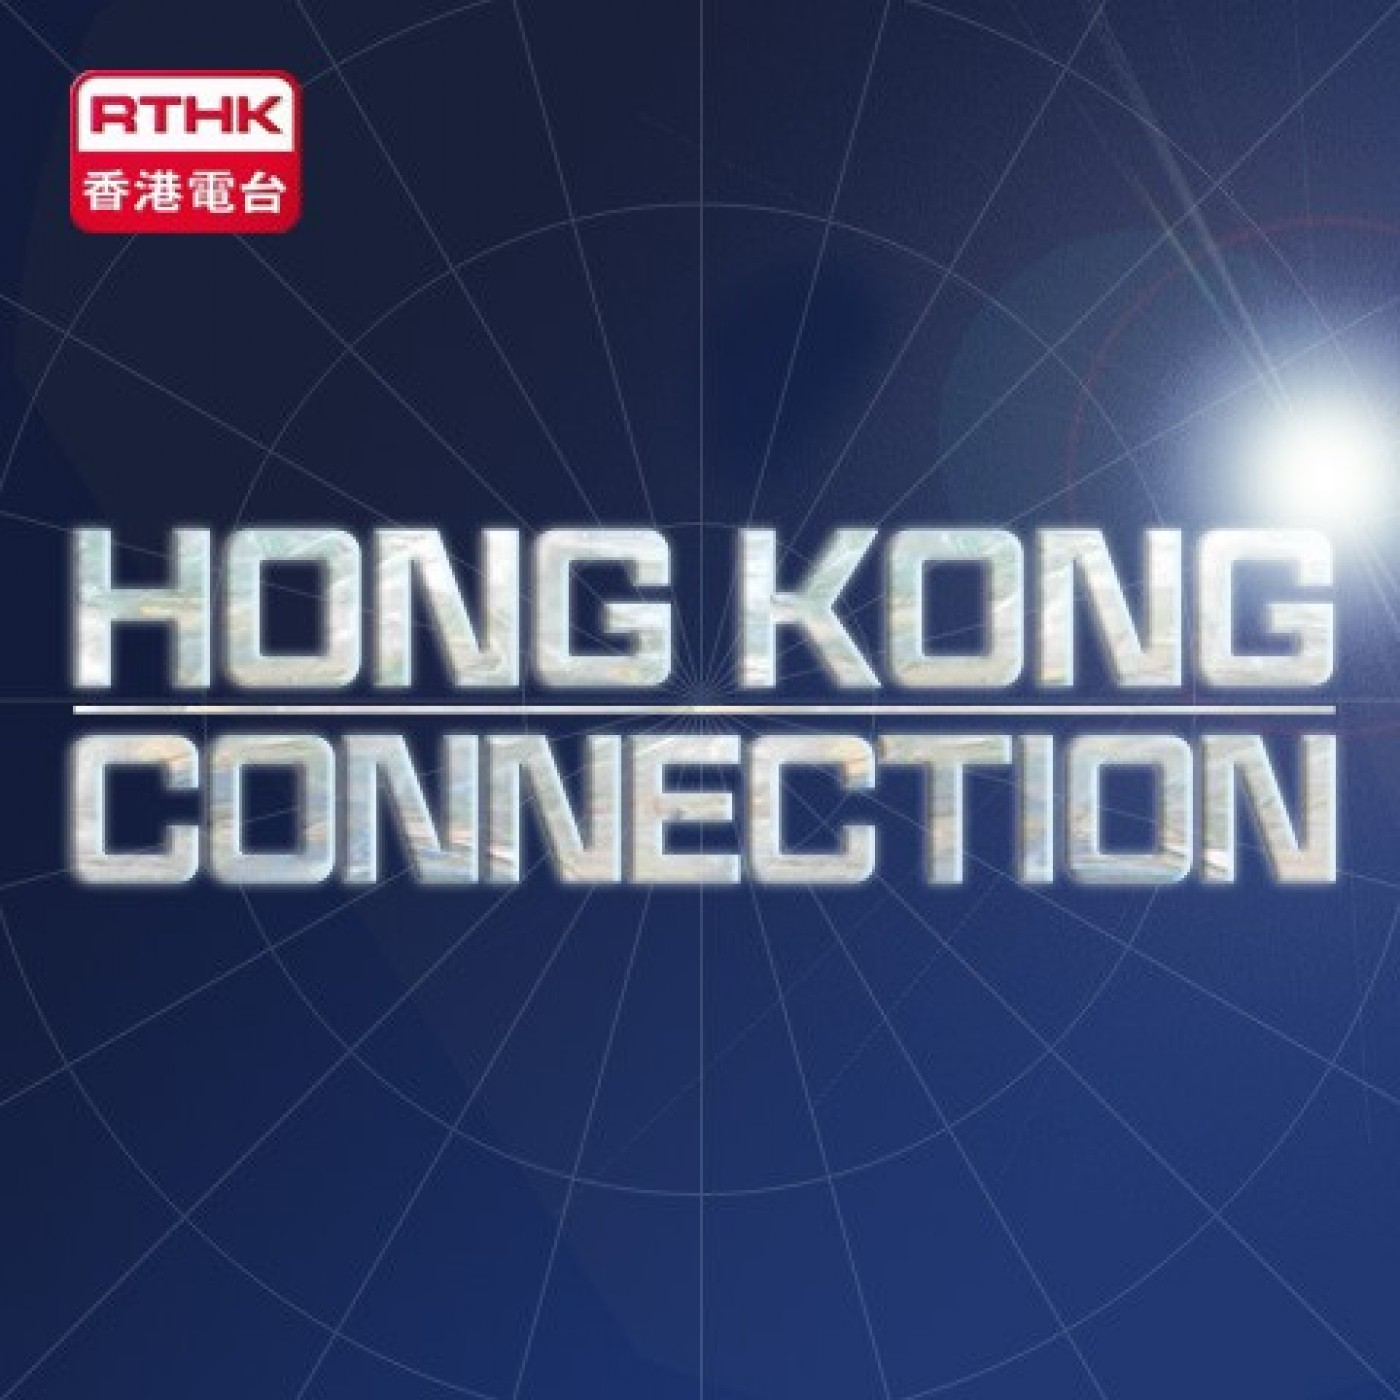 Hong Kong Connection